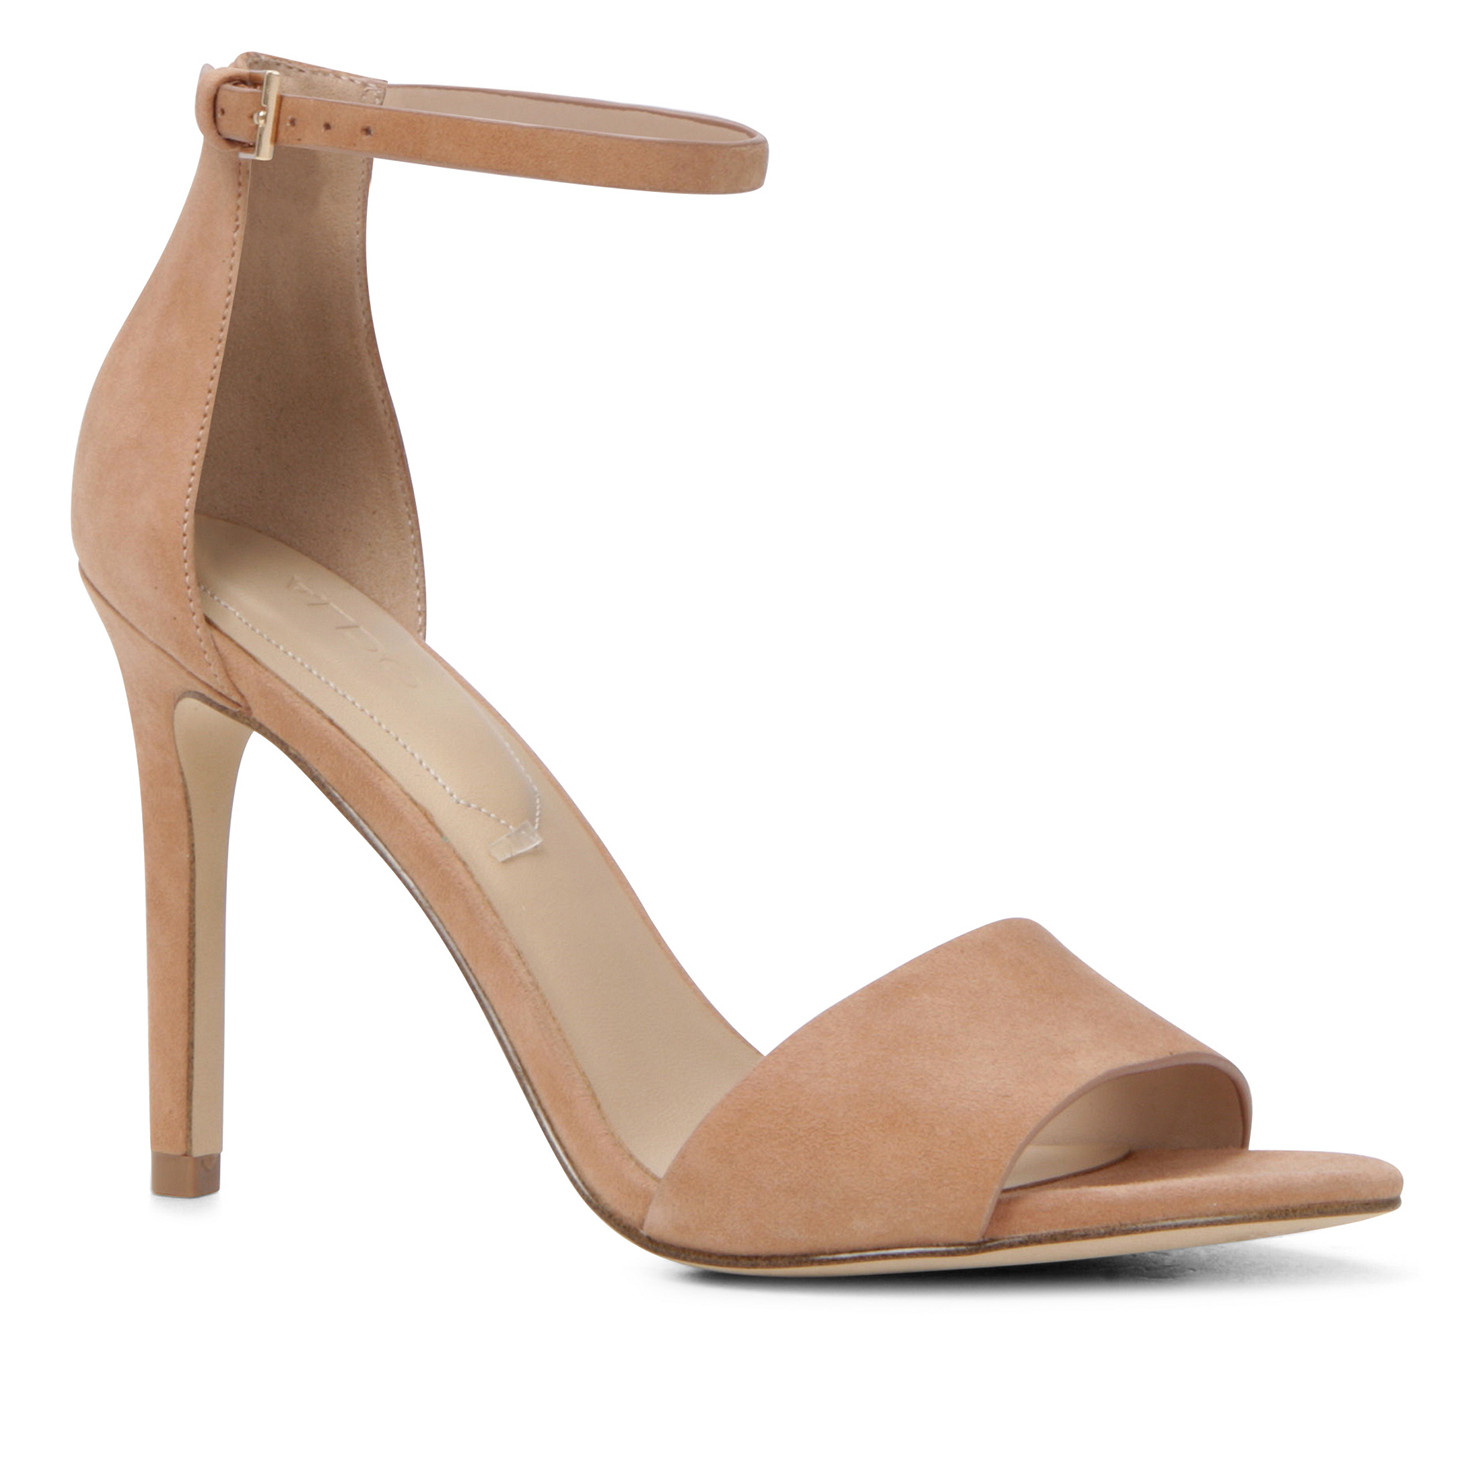 Aldo Shoes Womens Sandals